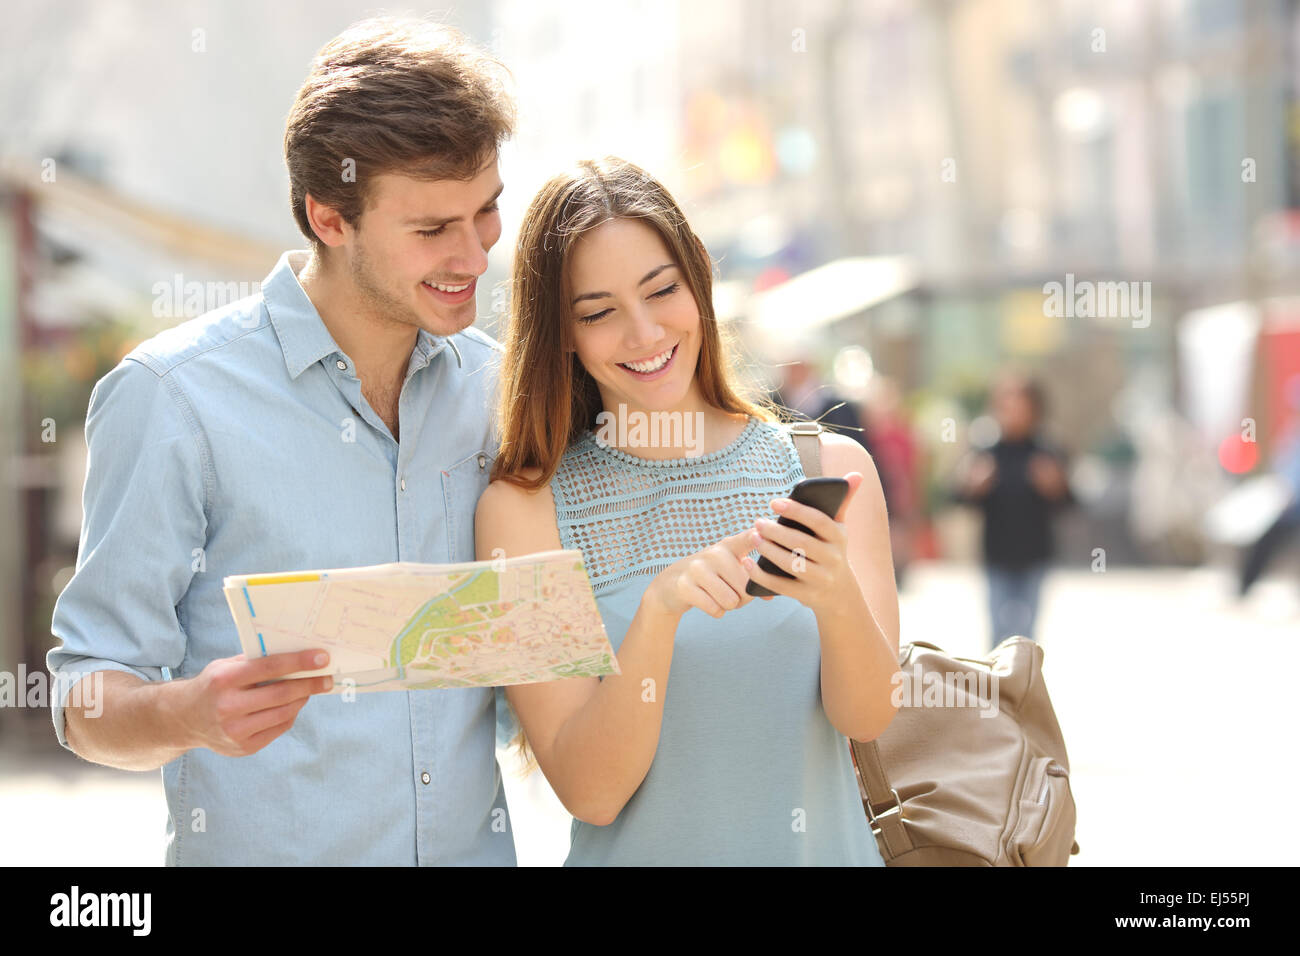 Couple of tourists consulting a city guide and smartphone gps in the street searching locations - Stock Image